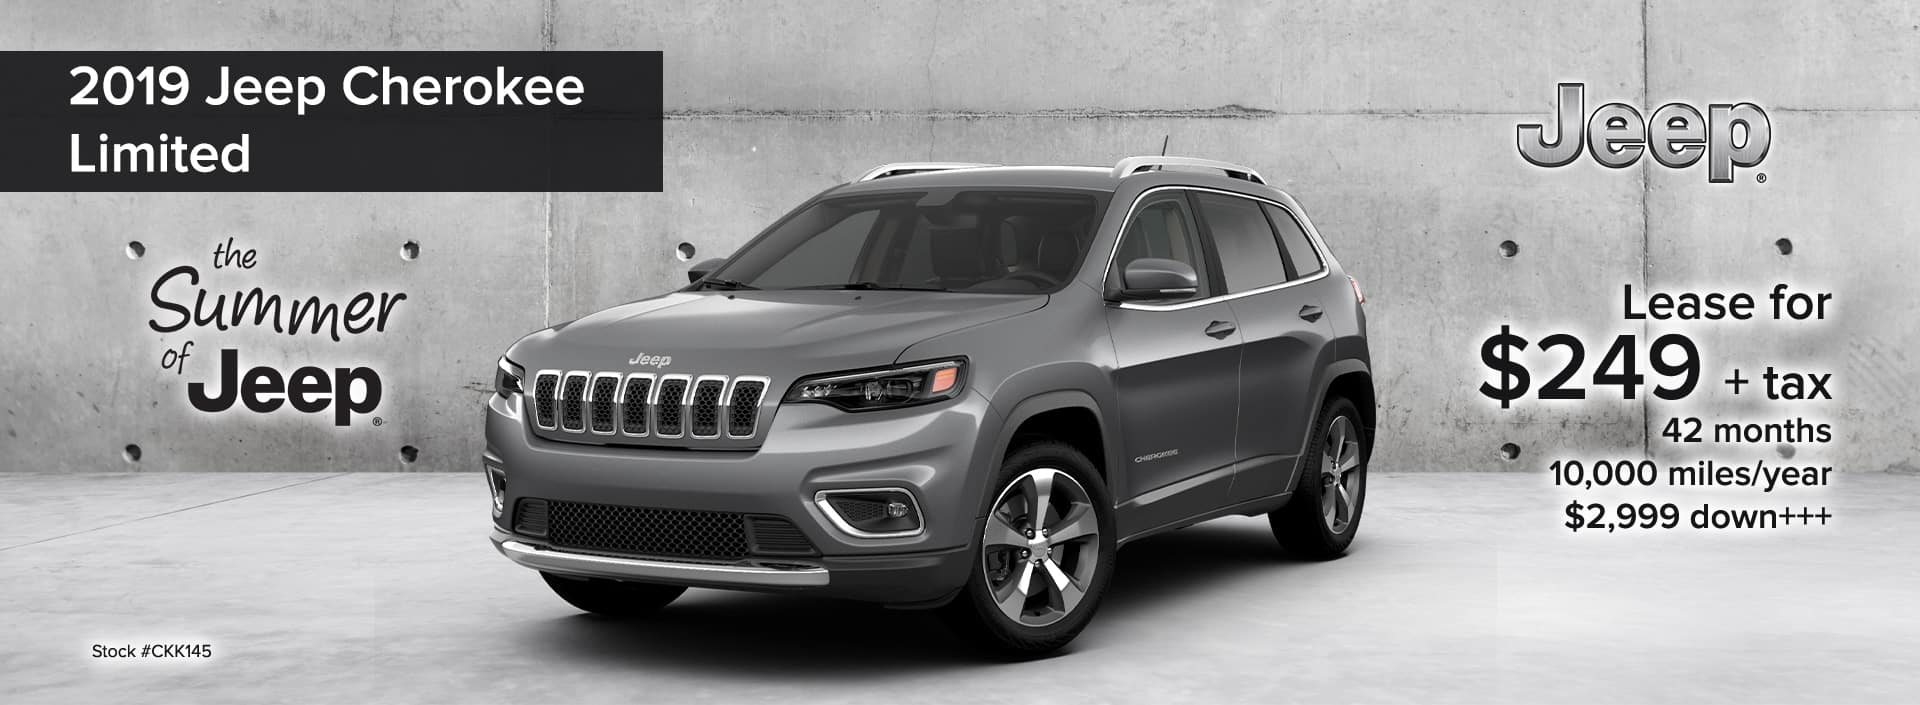 2019 Jeep Cherokee Limited The Summer of Jeep Event_August 2019 desktop